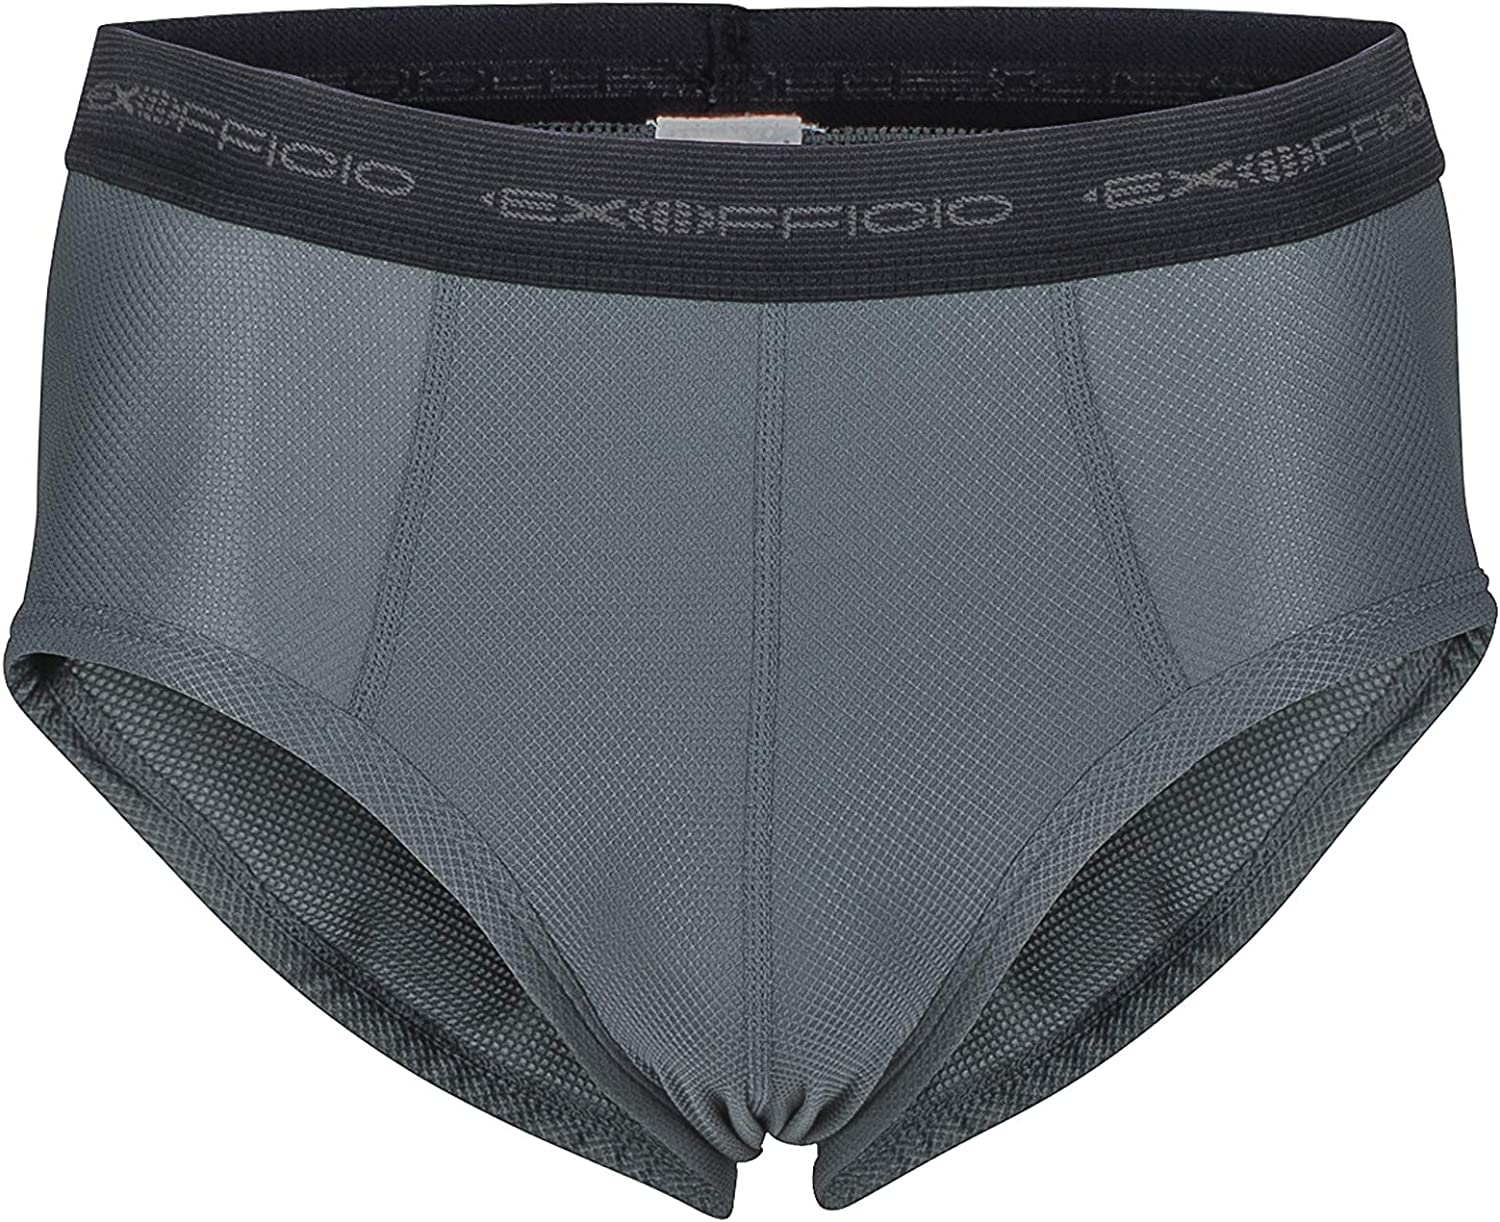 ExOfficio Men's Give-N-Go Flyless Brief, Charcoal, X-Large